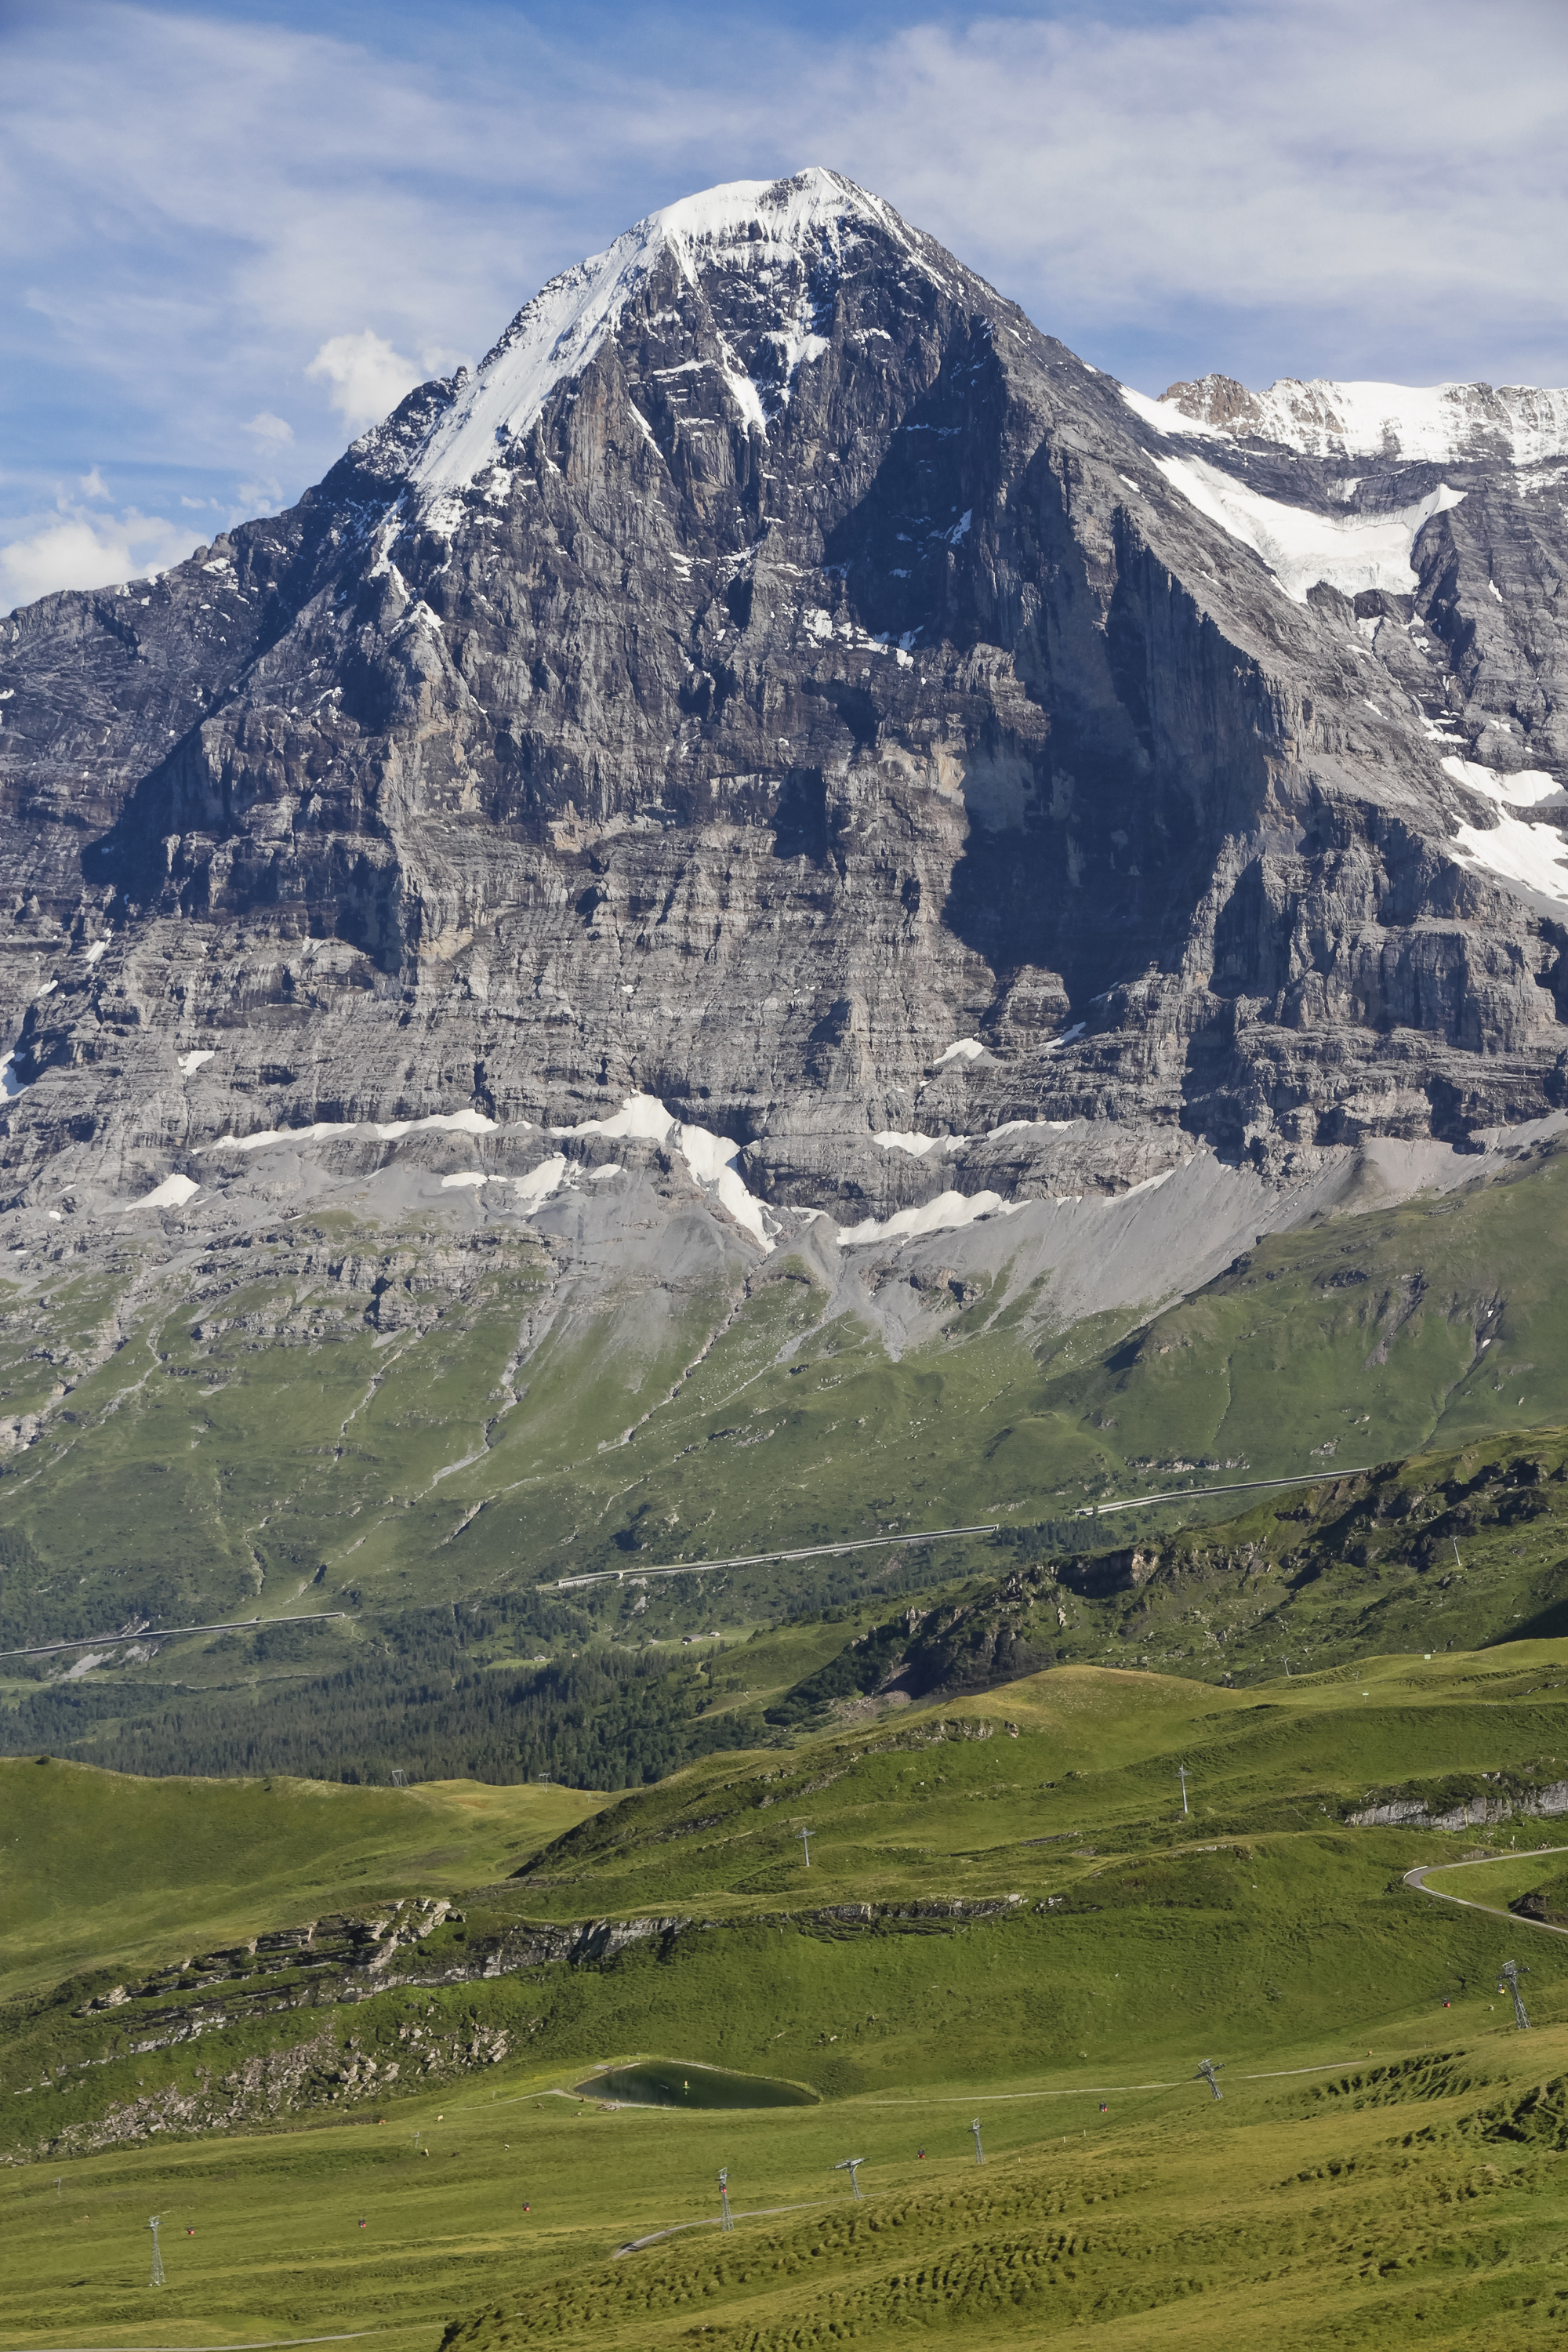 North face of Eiger as seen from Männlichen, Bern, Switzerland, 2012 August